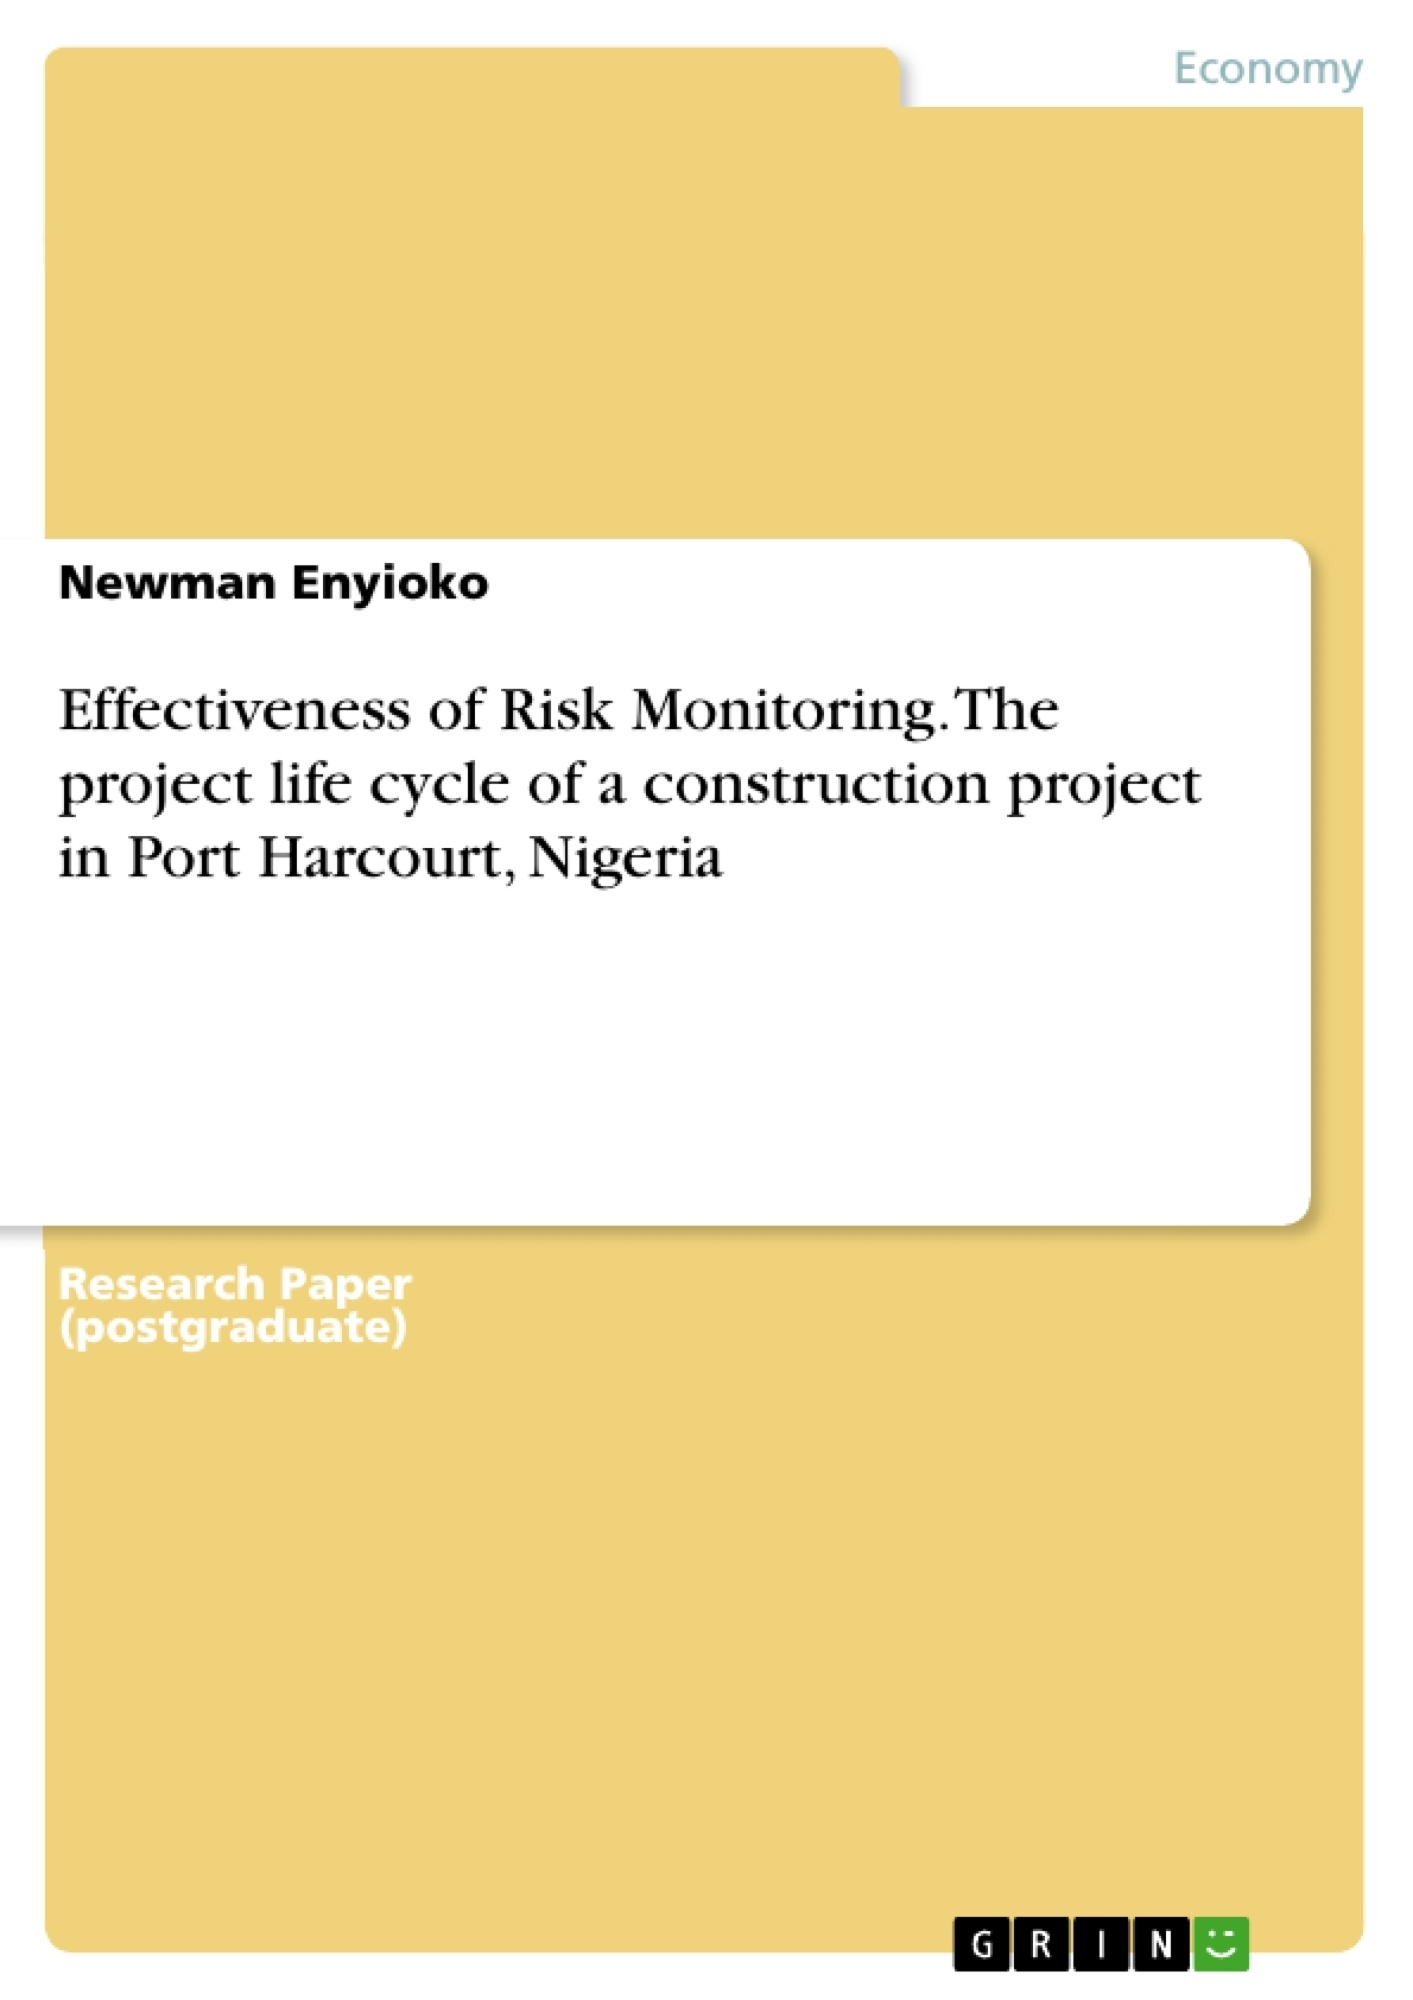 Title: Effectiveness of Risk Monitoring. The project life cycle of a construction project in Port Harcourt, Nigeria